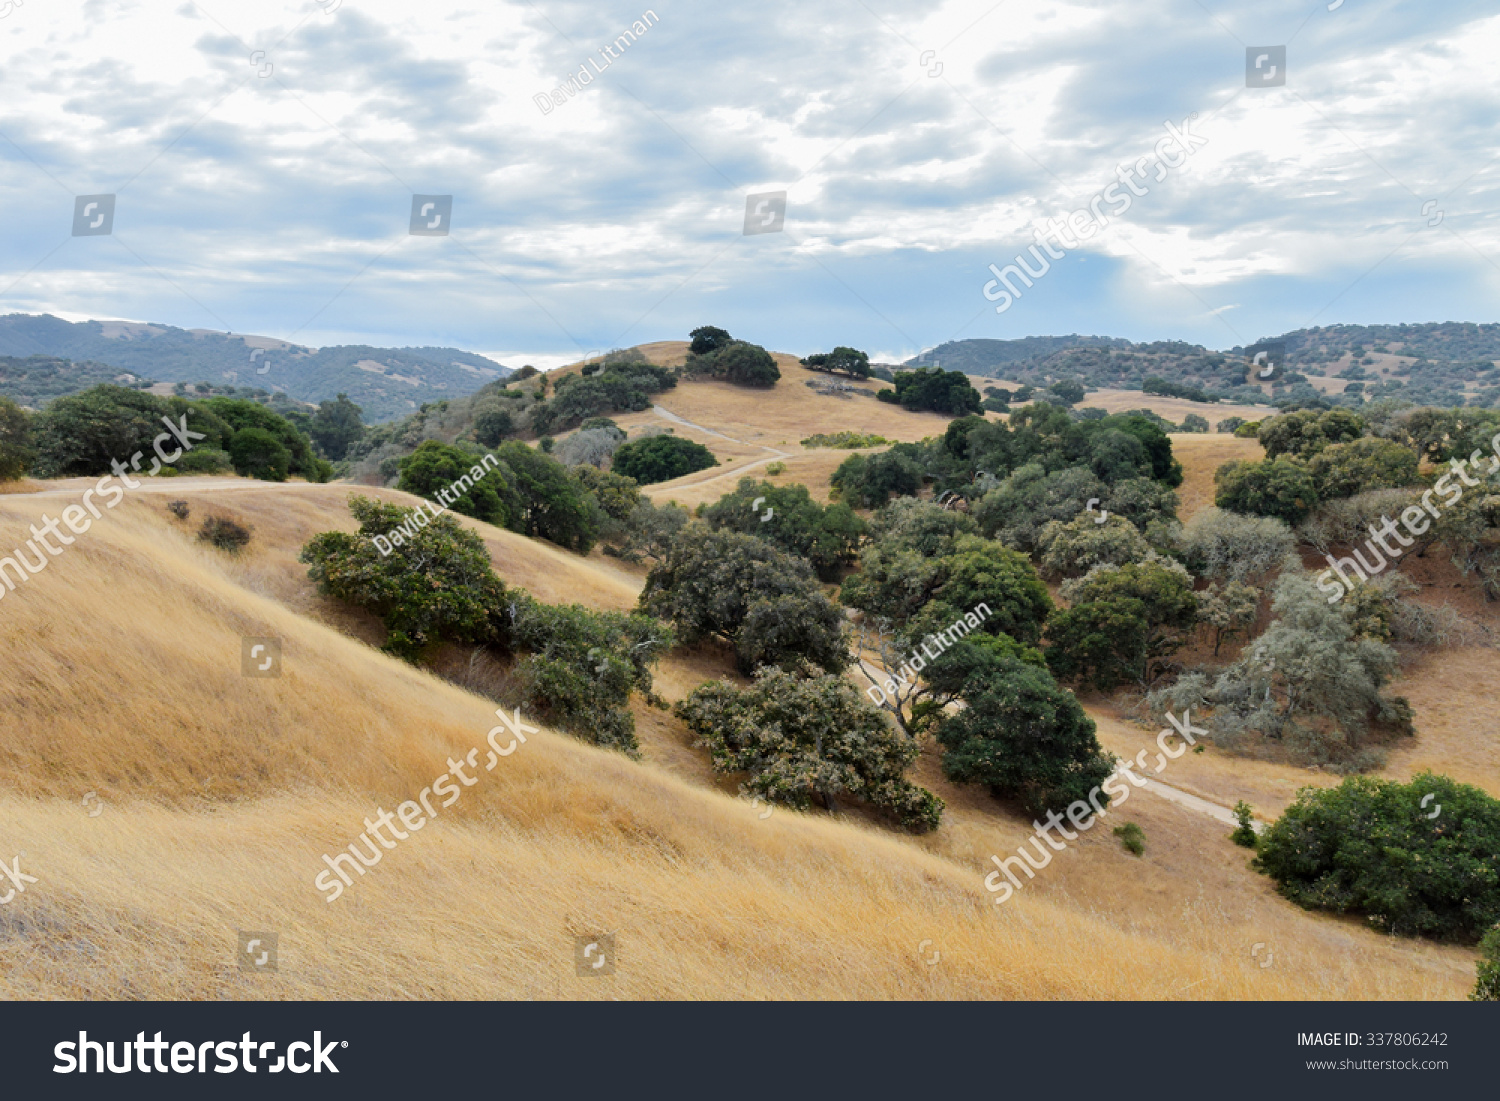 "Rolling hills and fields of dry grass with Coastal Live Oak trees in the foothills of central California, the ""Golden State"".  Five years of drought have led to hazardous fire conditions and risk."